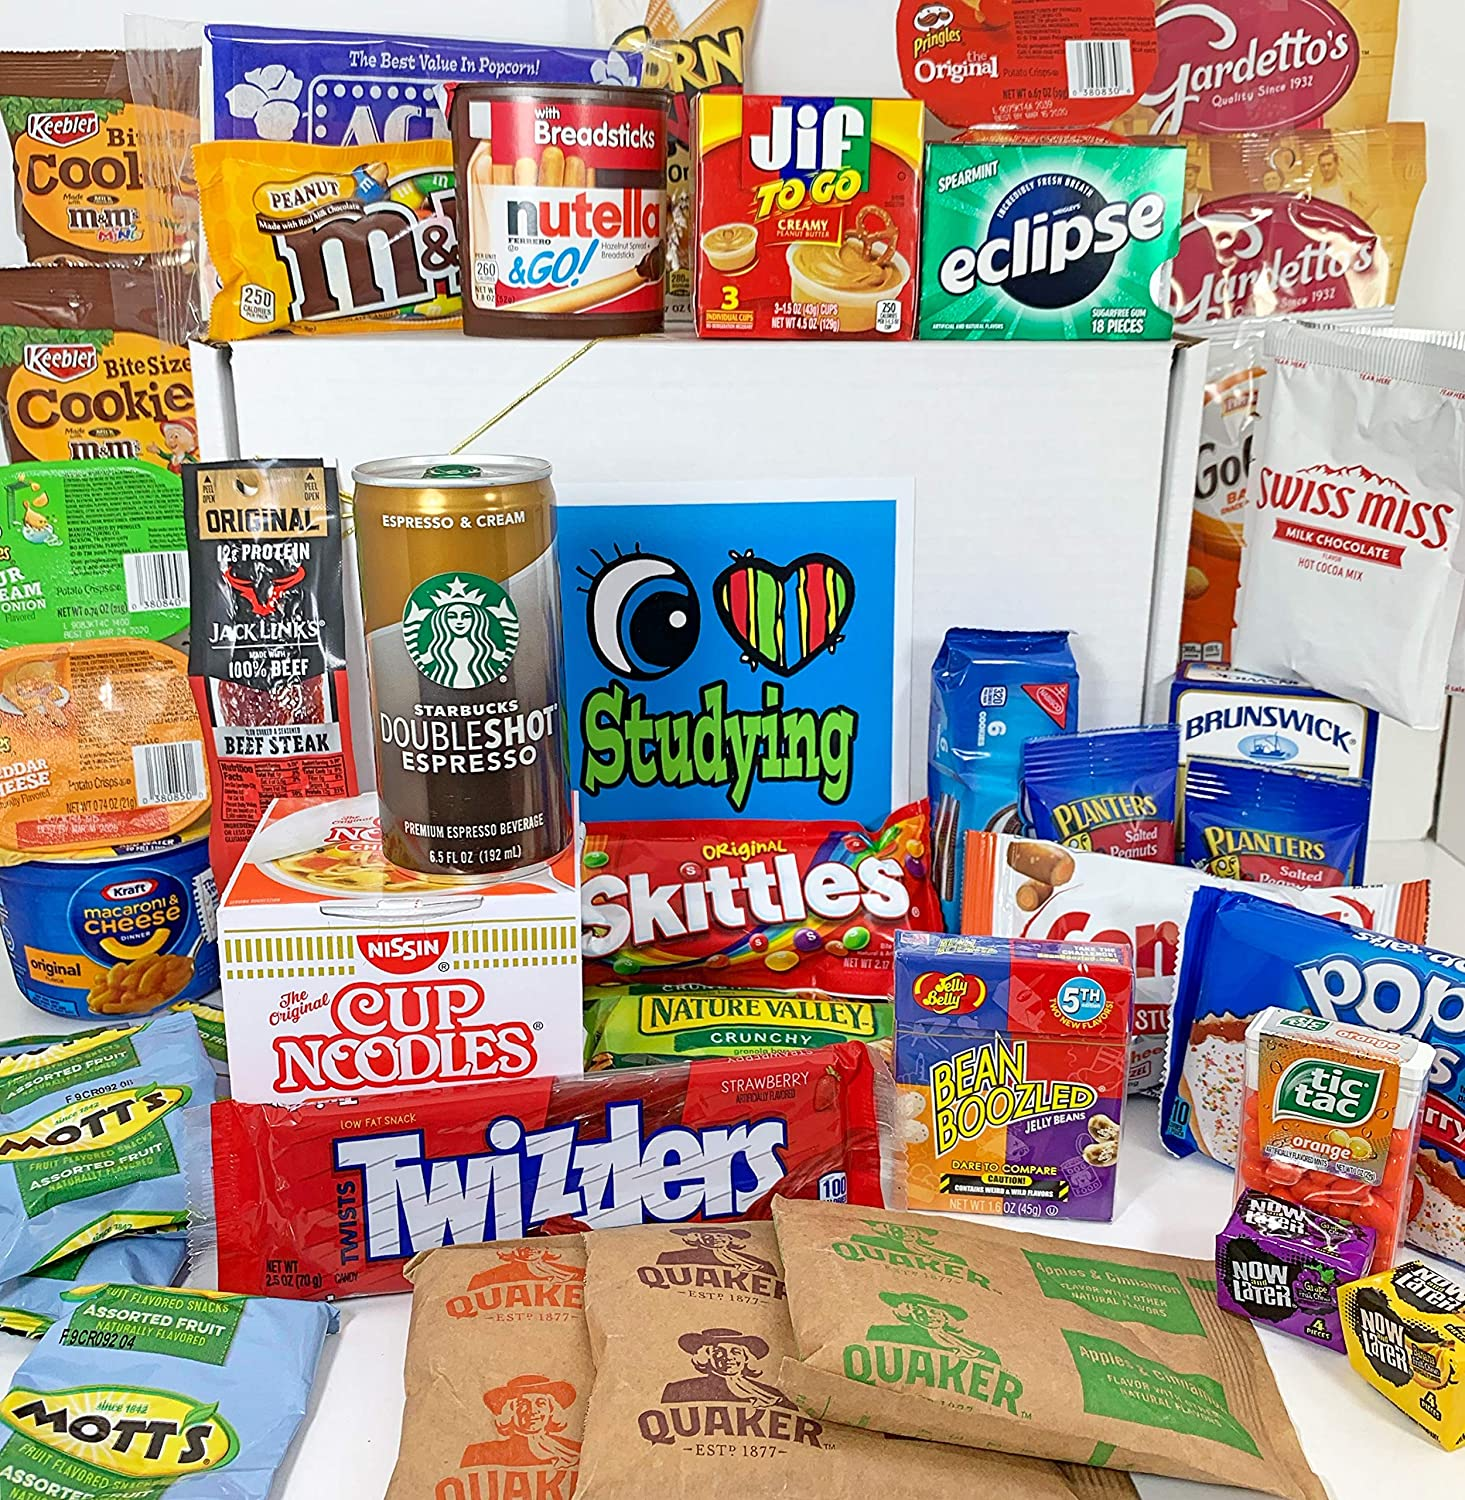 "Ultimate College Care Package ""I Love Studying"" Gift Box Basket - We've Got the Good Stuff! - Over 6 Pounds, 44 Items - HS, Undergrad, Graduate, Military, Graduate, Doctoral, Officer Training - Prime"